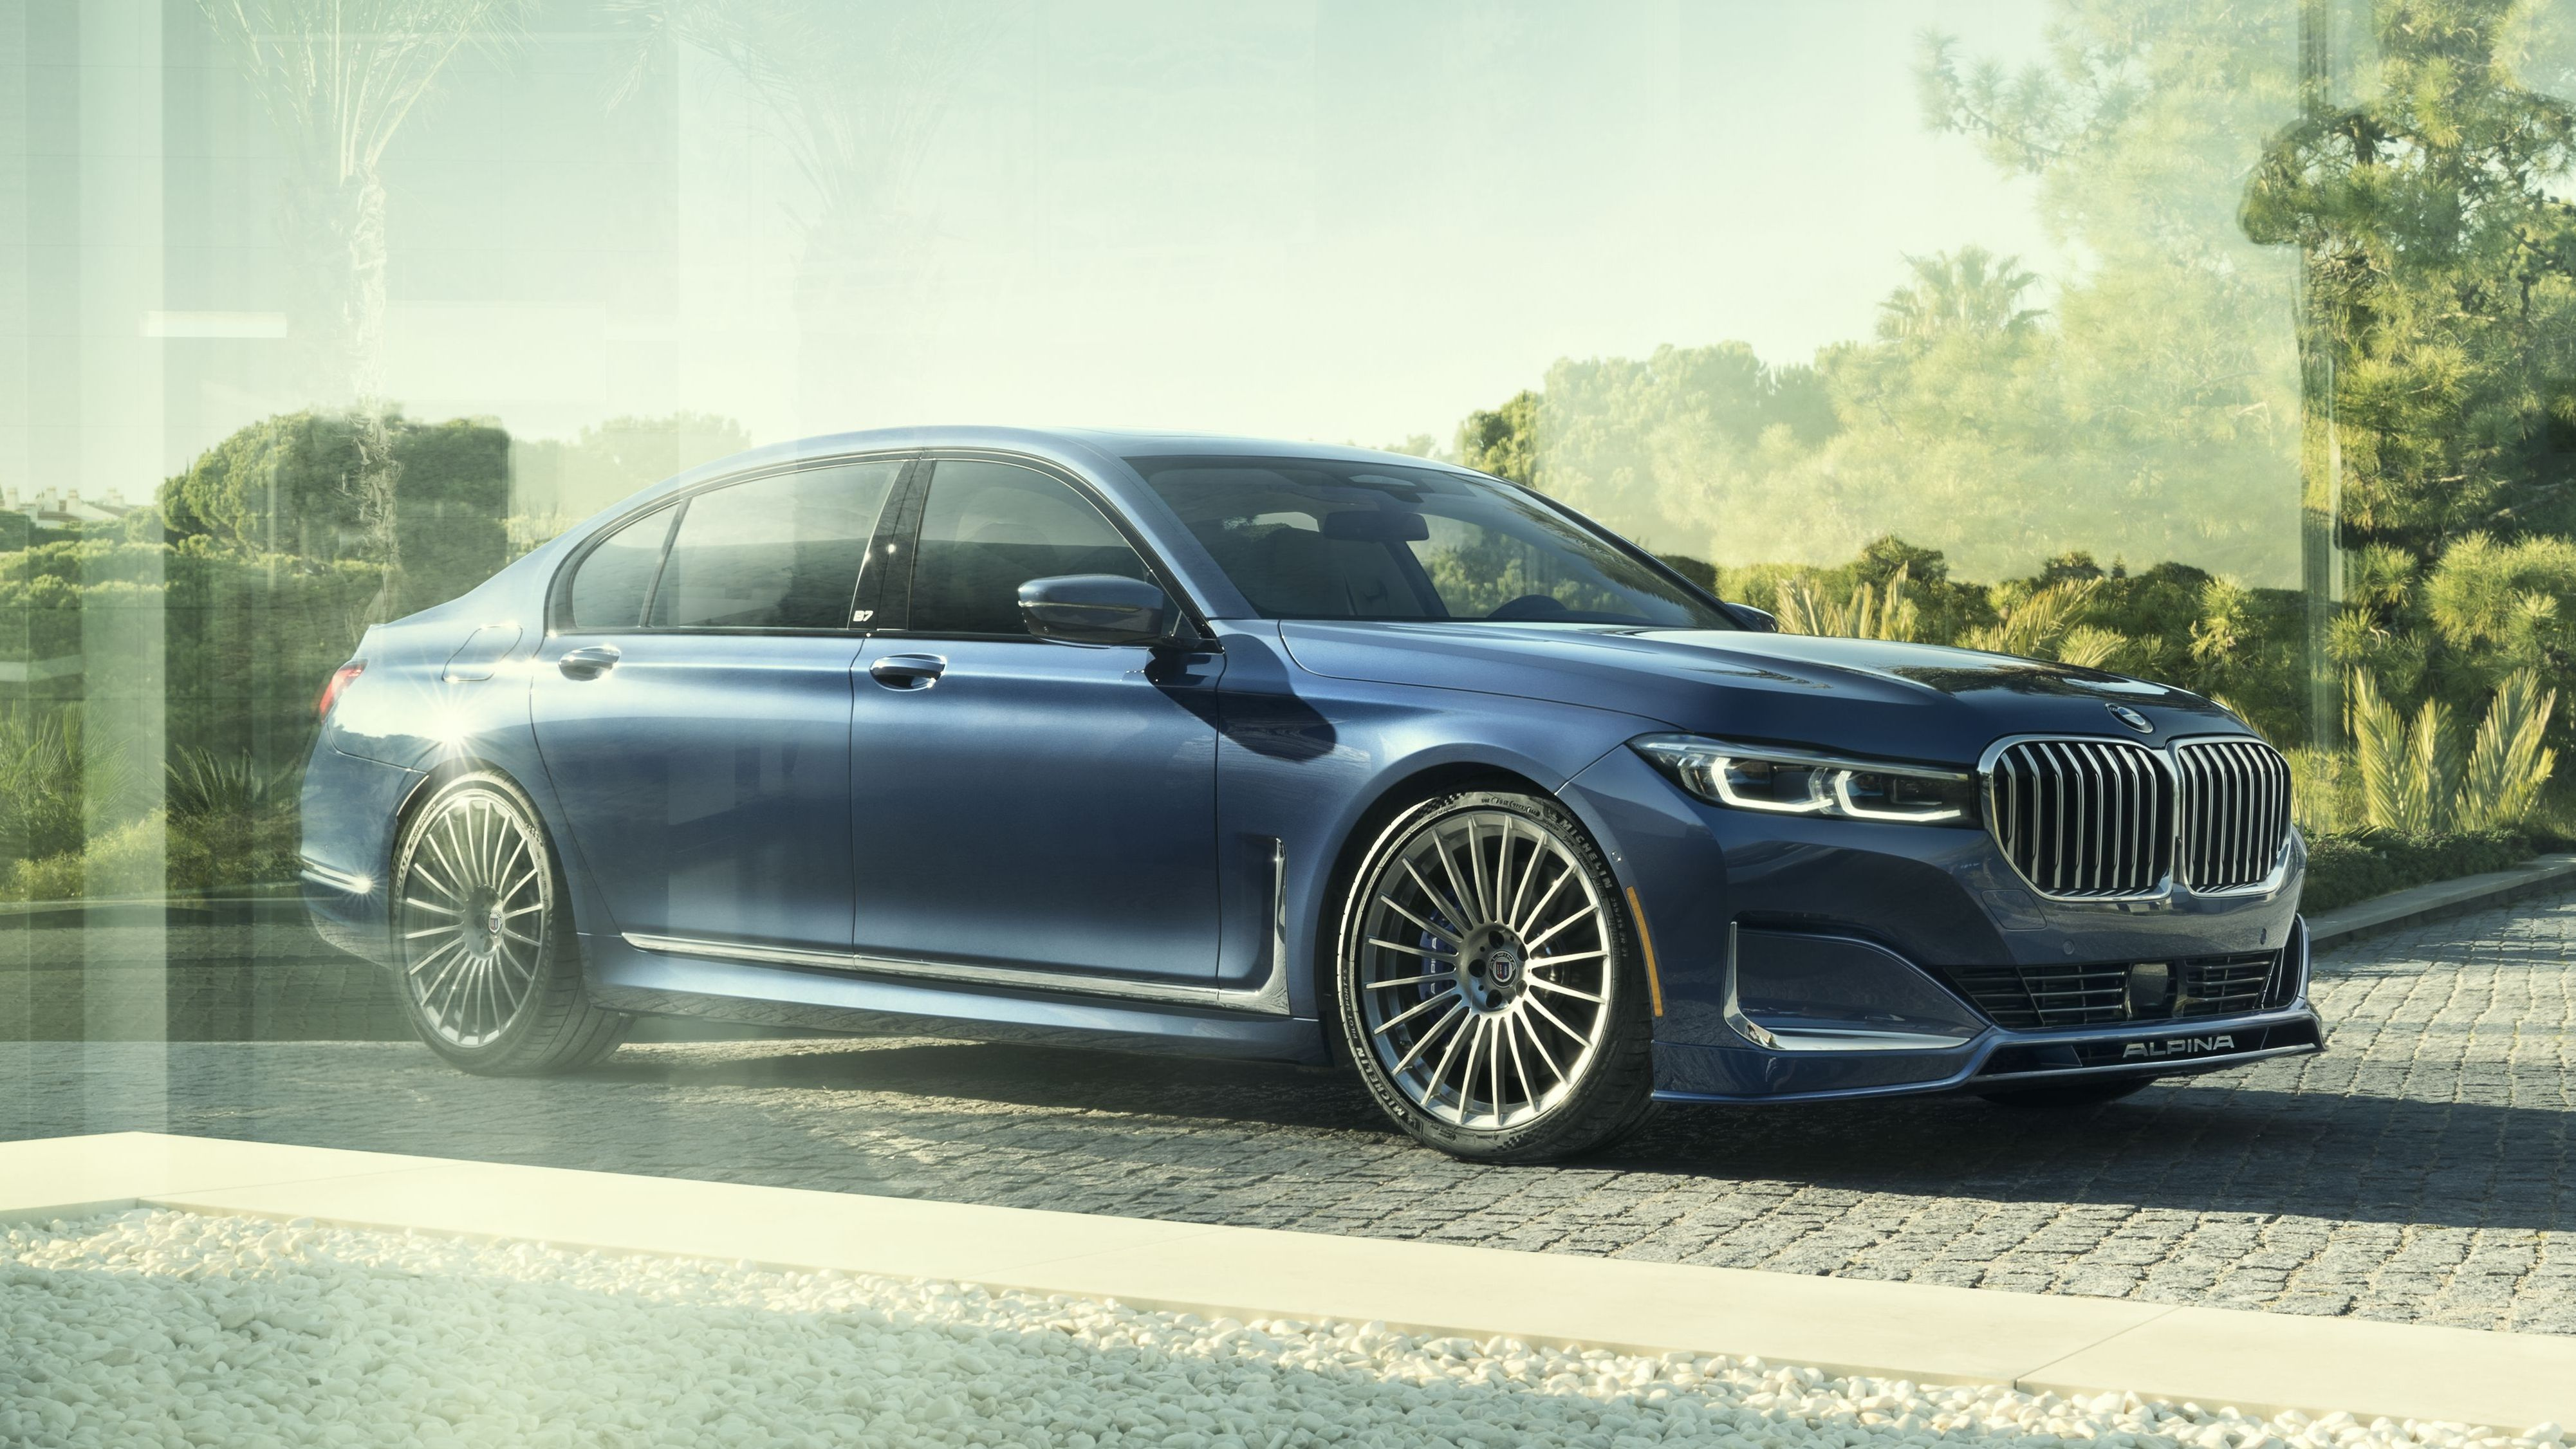 Check Out The 2020 Alpina B7 The World S Fastest Sedan Bmw Bmw